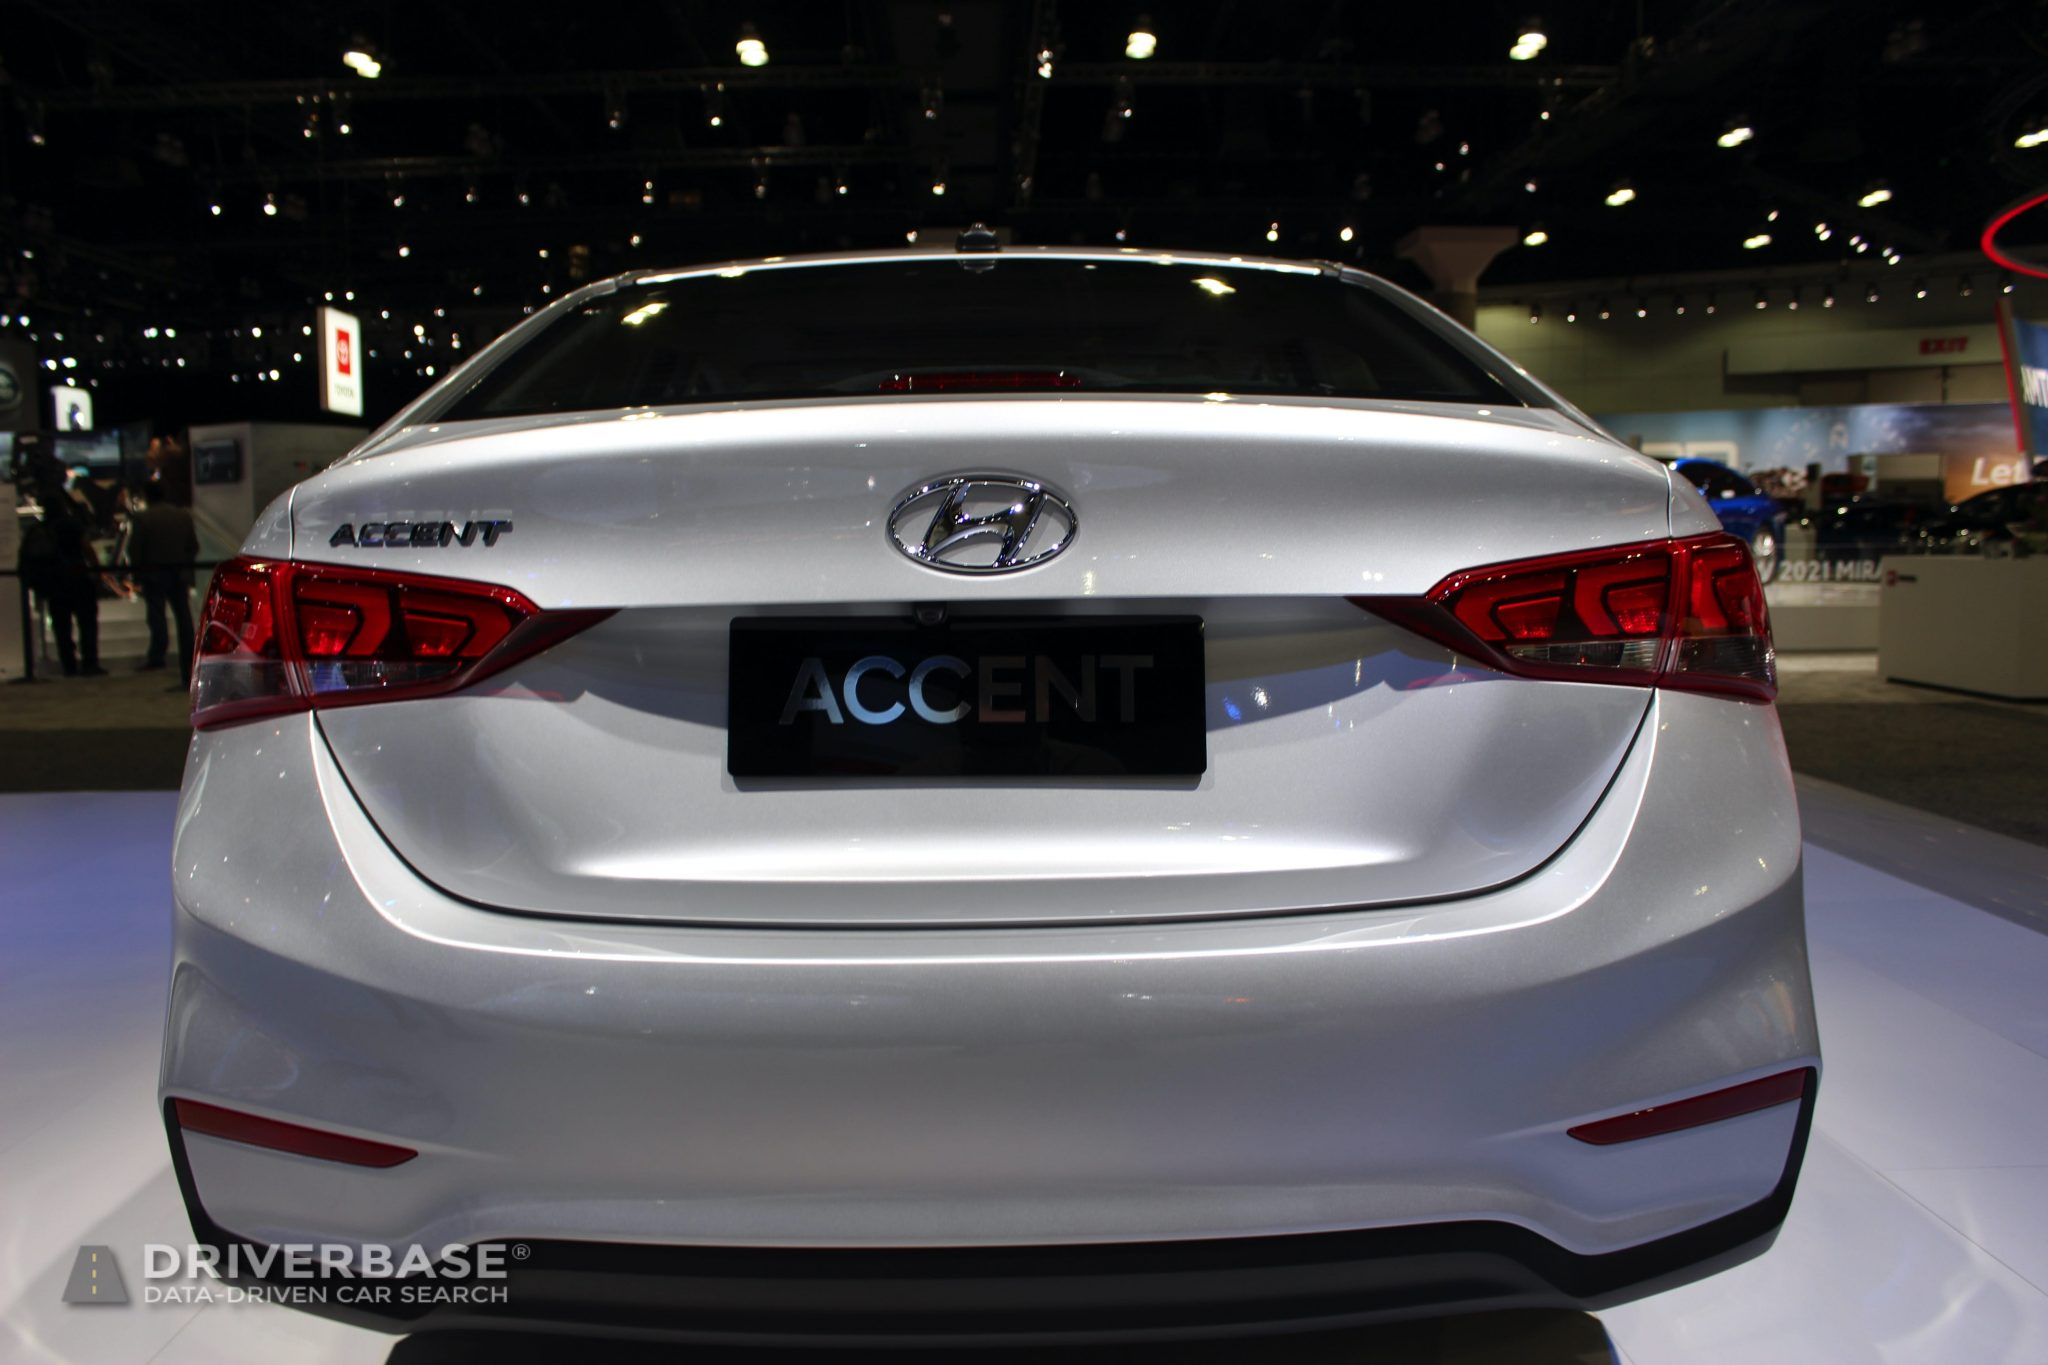 2020 Hyundai Accent at the 2019 Los Angeles Auto Show